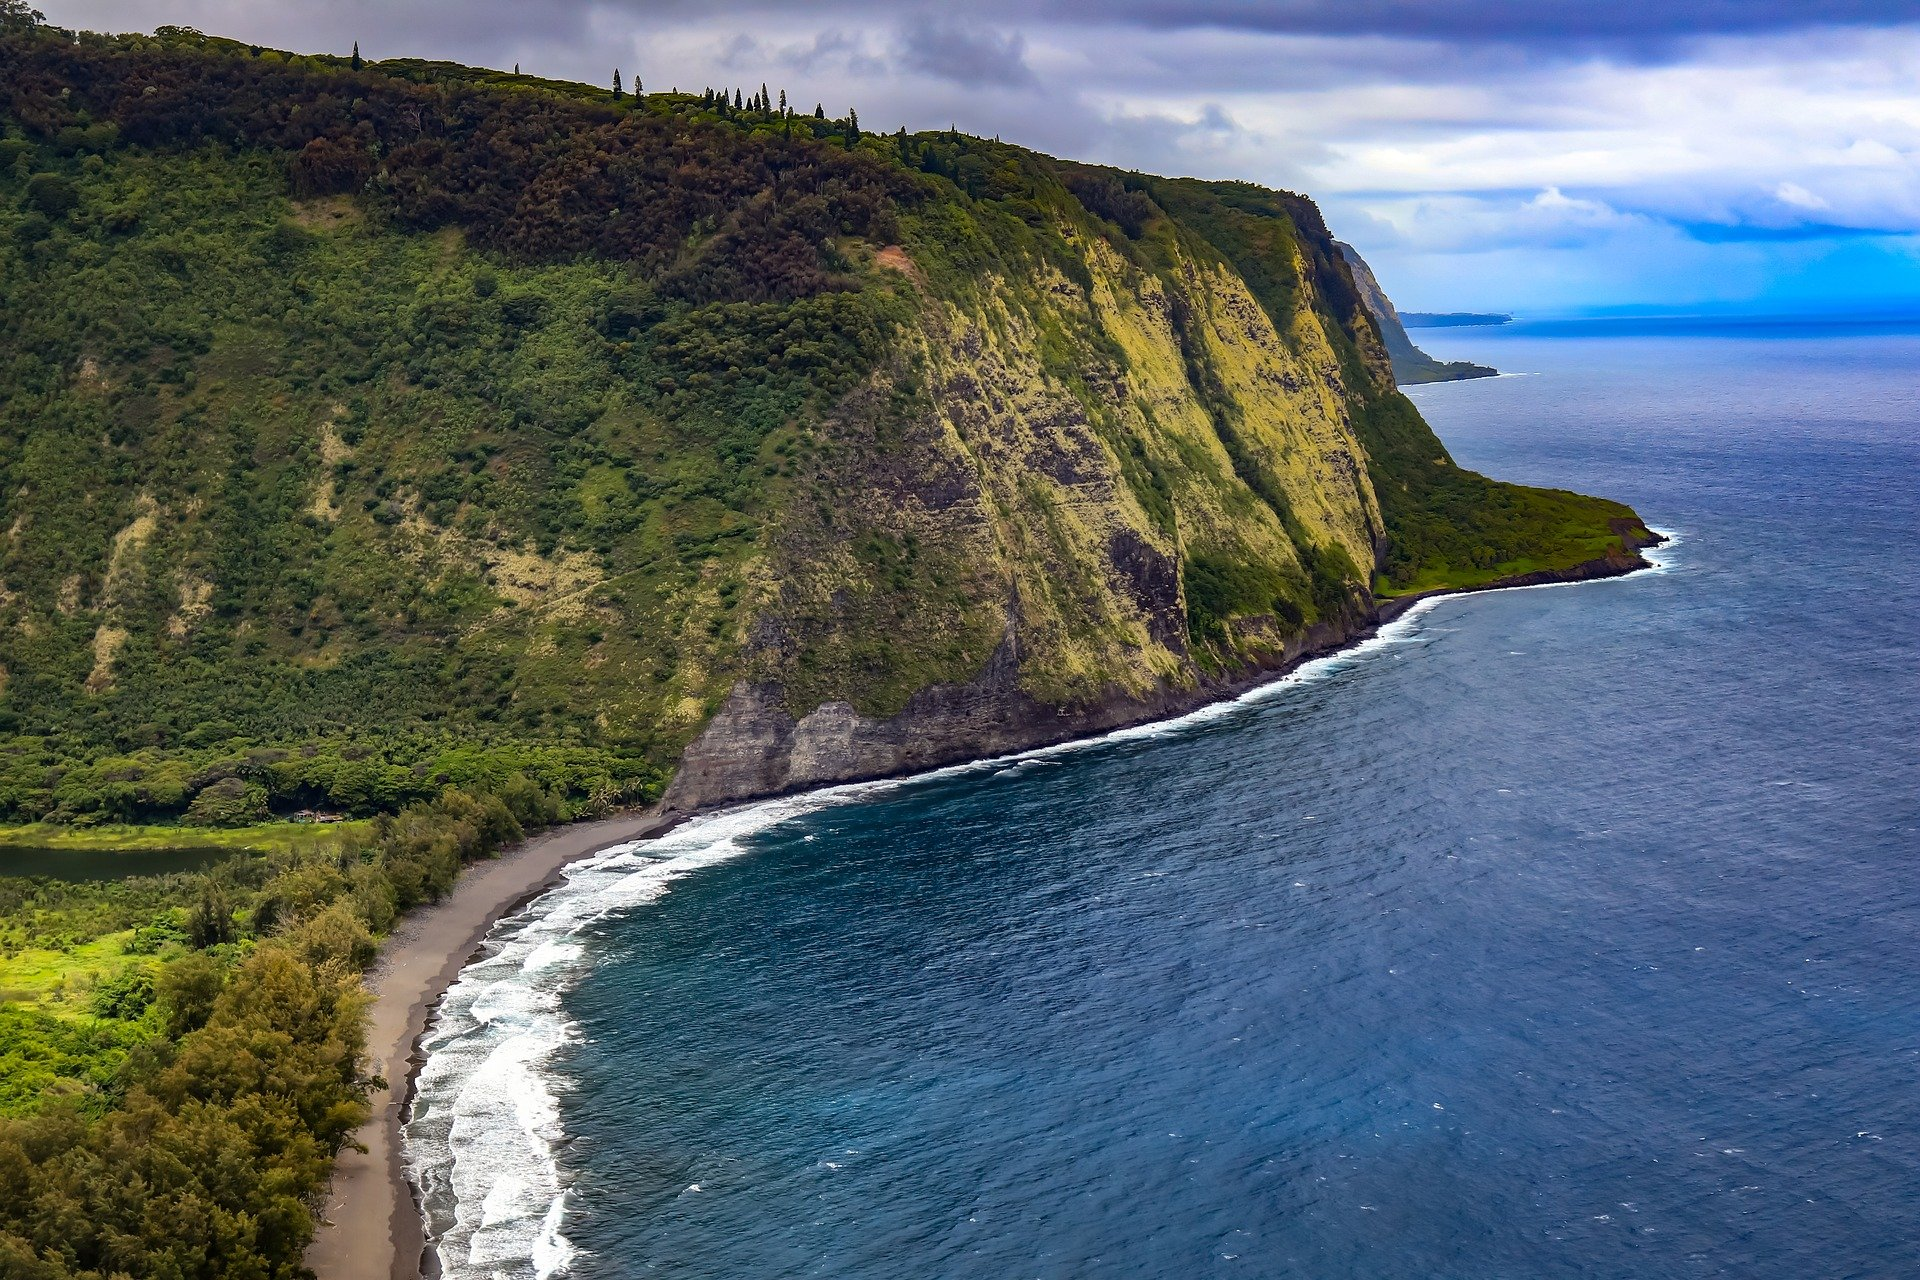 Big Island Hawaii 1 week itinerary; 7 days on the big island Hawaii; top activities in Kona, Hawaii; attractions Big Island Hawaii; Kailua Kona what to do